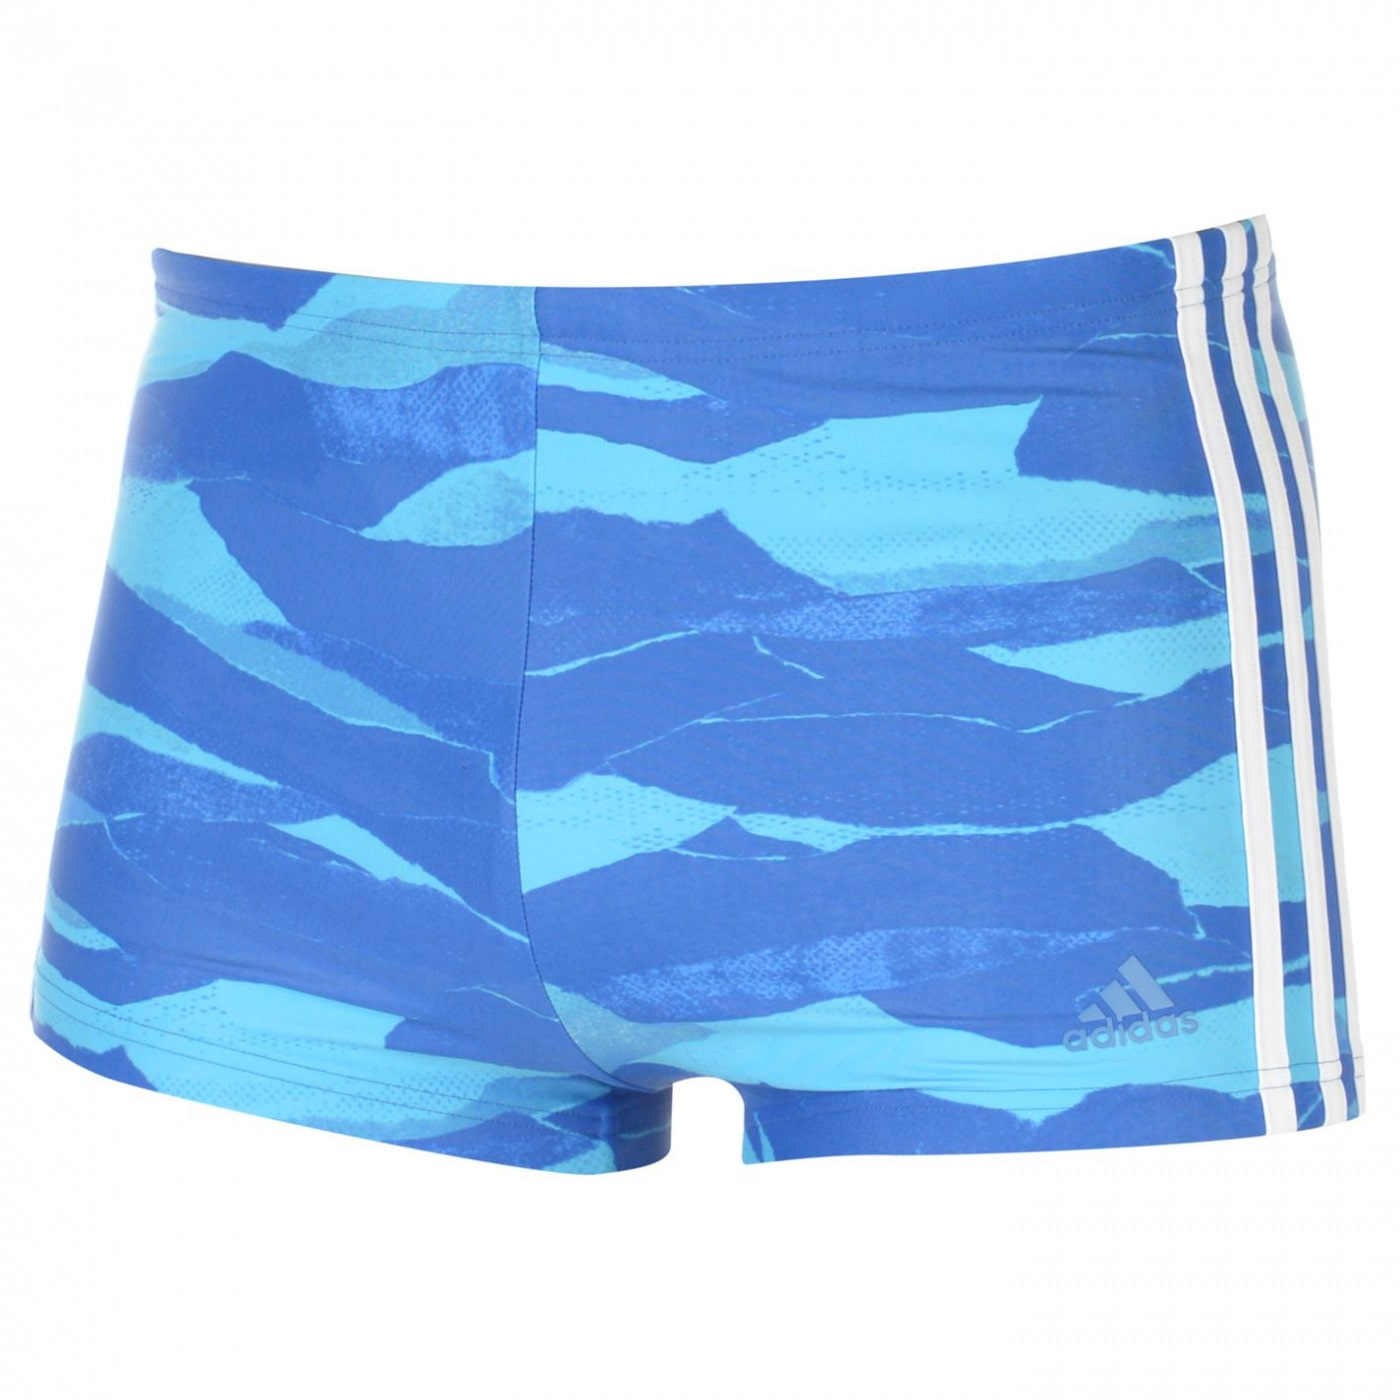 Adidas 3S FIT Swim Shorts Mens